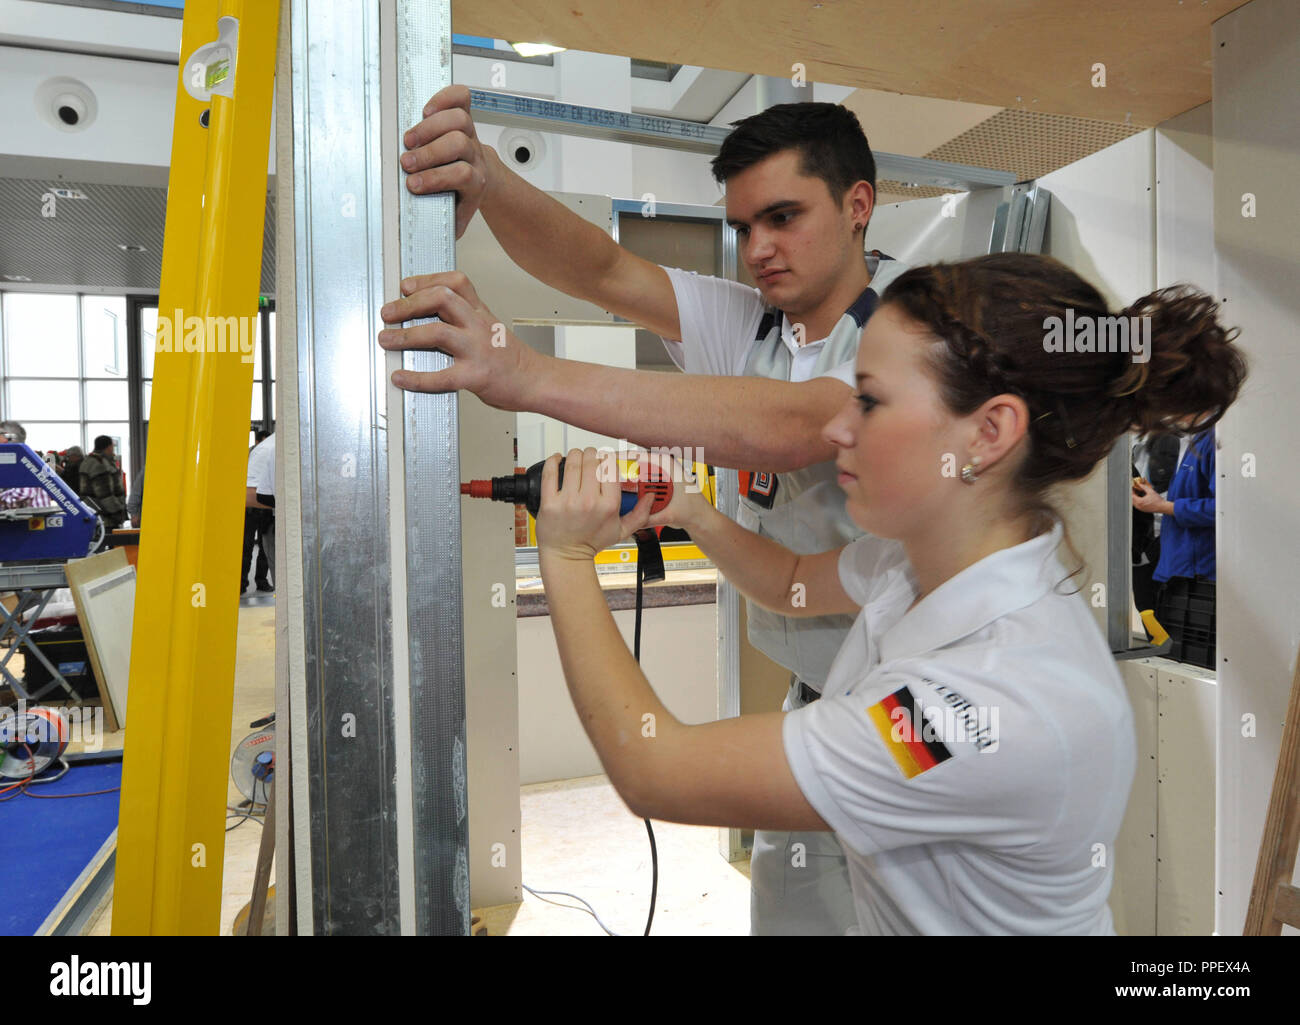 The plasterers Julia Leibold and Jonathan Stirnweiss prepare in the training camp of the German national team of the Construction Confederation at the exhibition 'Bau 2013' for the WorldSkills competition in Leipzig. - Stock Image